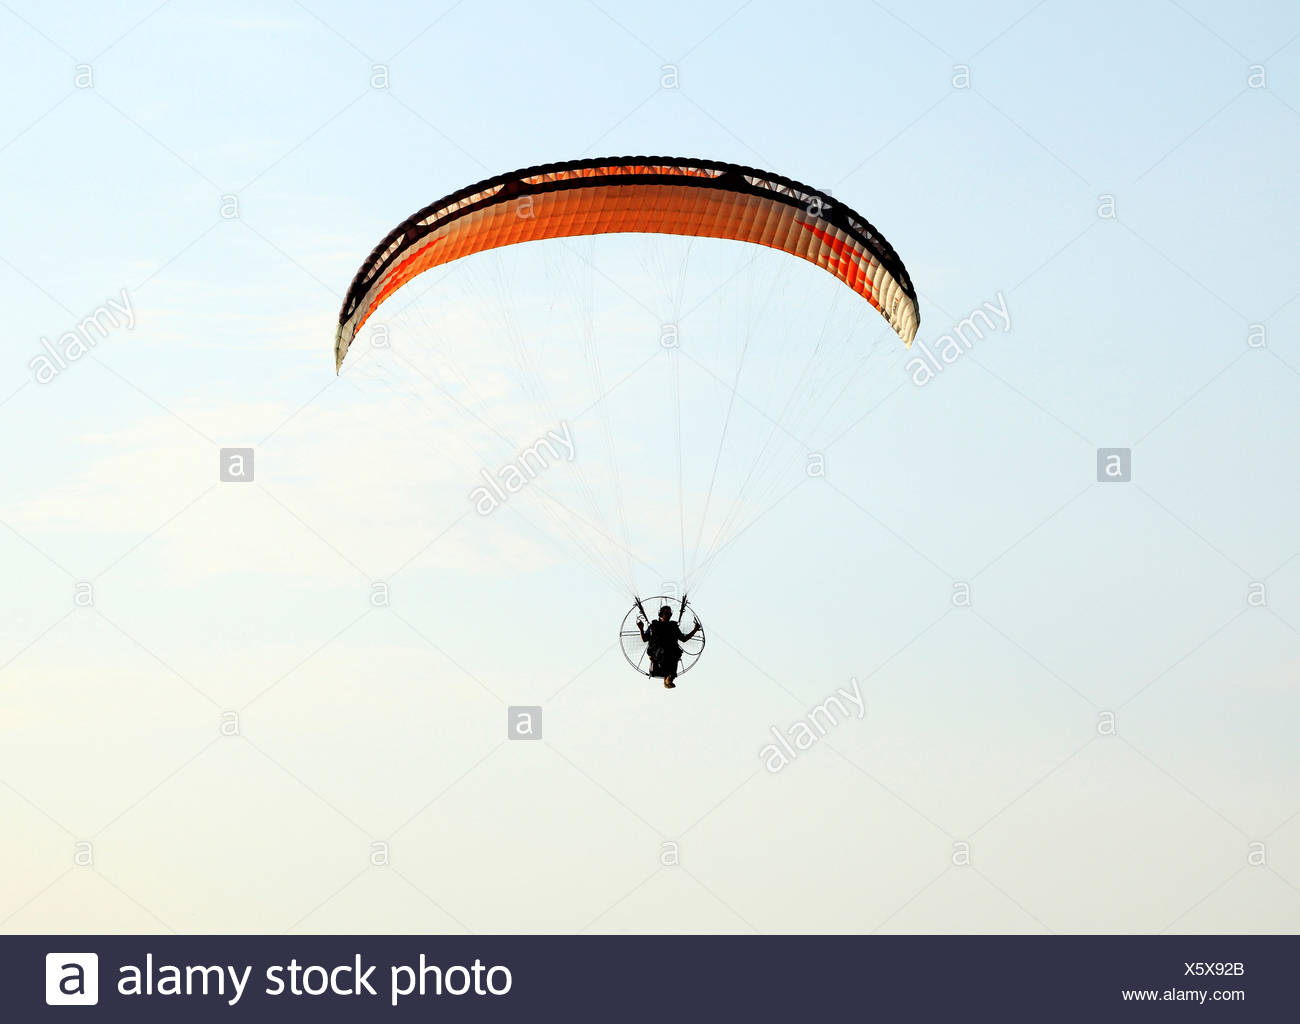 Glider Stock Photos & Glider Stock Images - Page 2 - Alamy